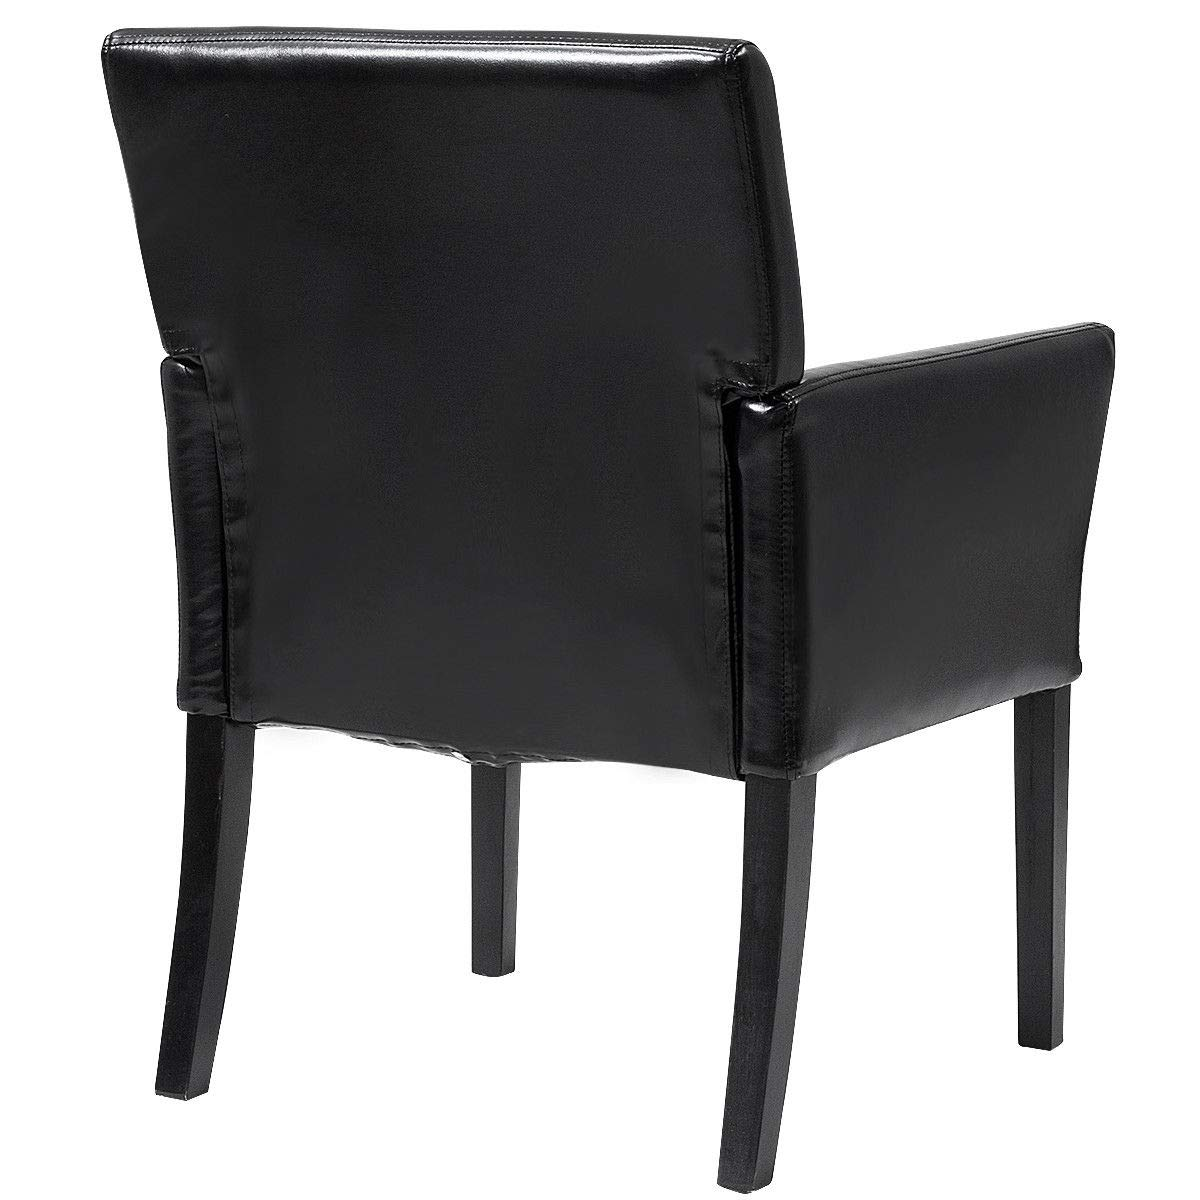 Giantex Leather Reception Guest Chairs Set Office Executive Side Chair Padded Seat Ergonomic Mid-Back Meeting Waiting Room Conference Office Guest Chairs w//Arms Black 1 PC